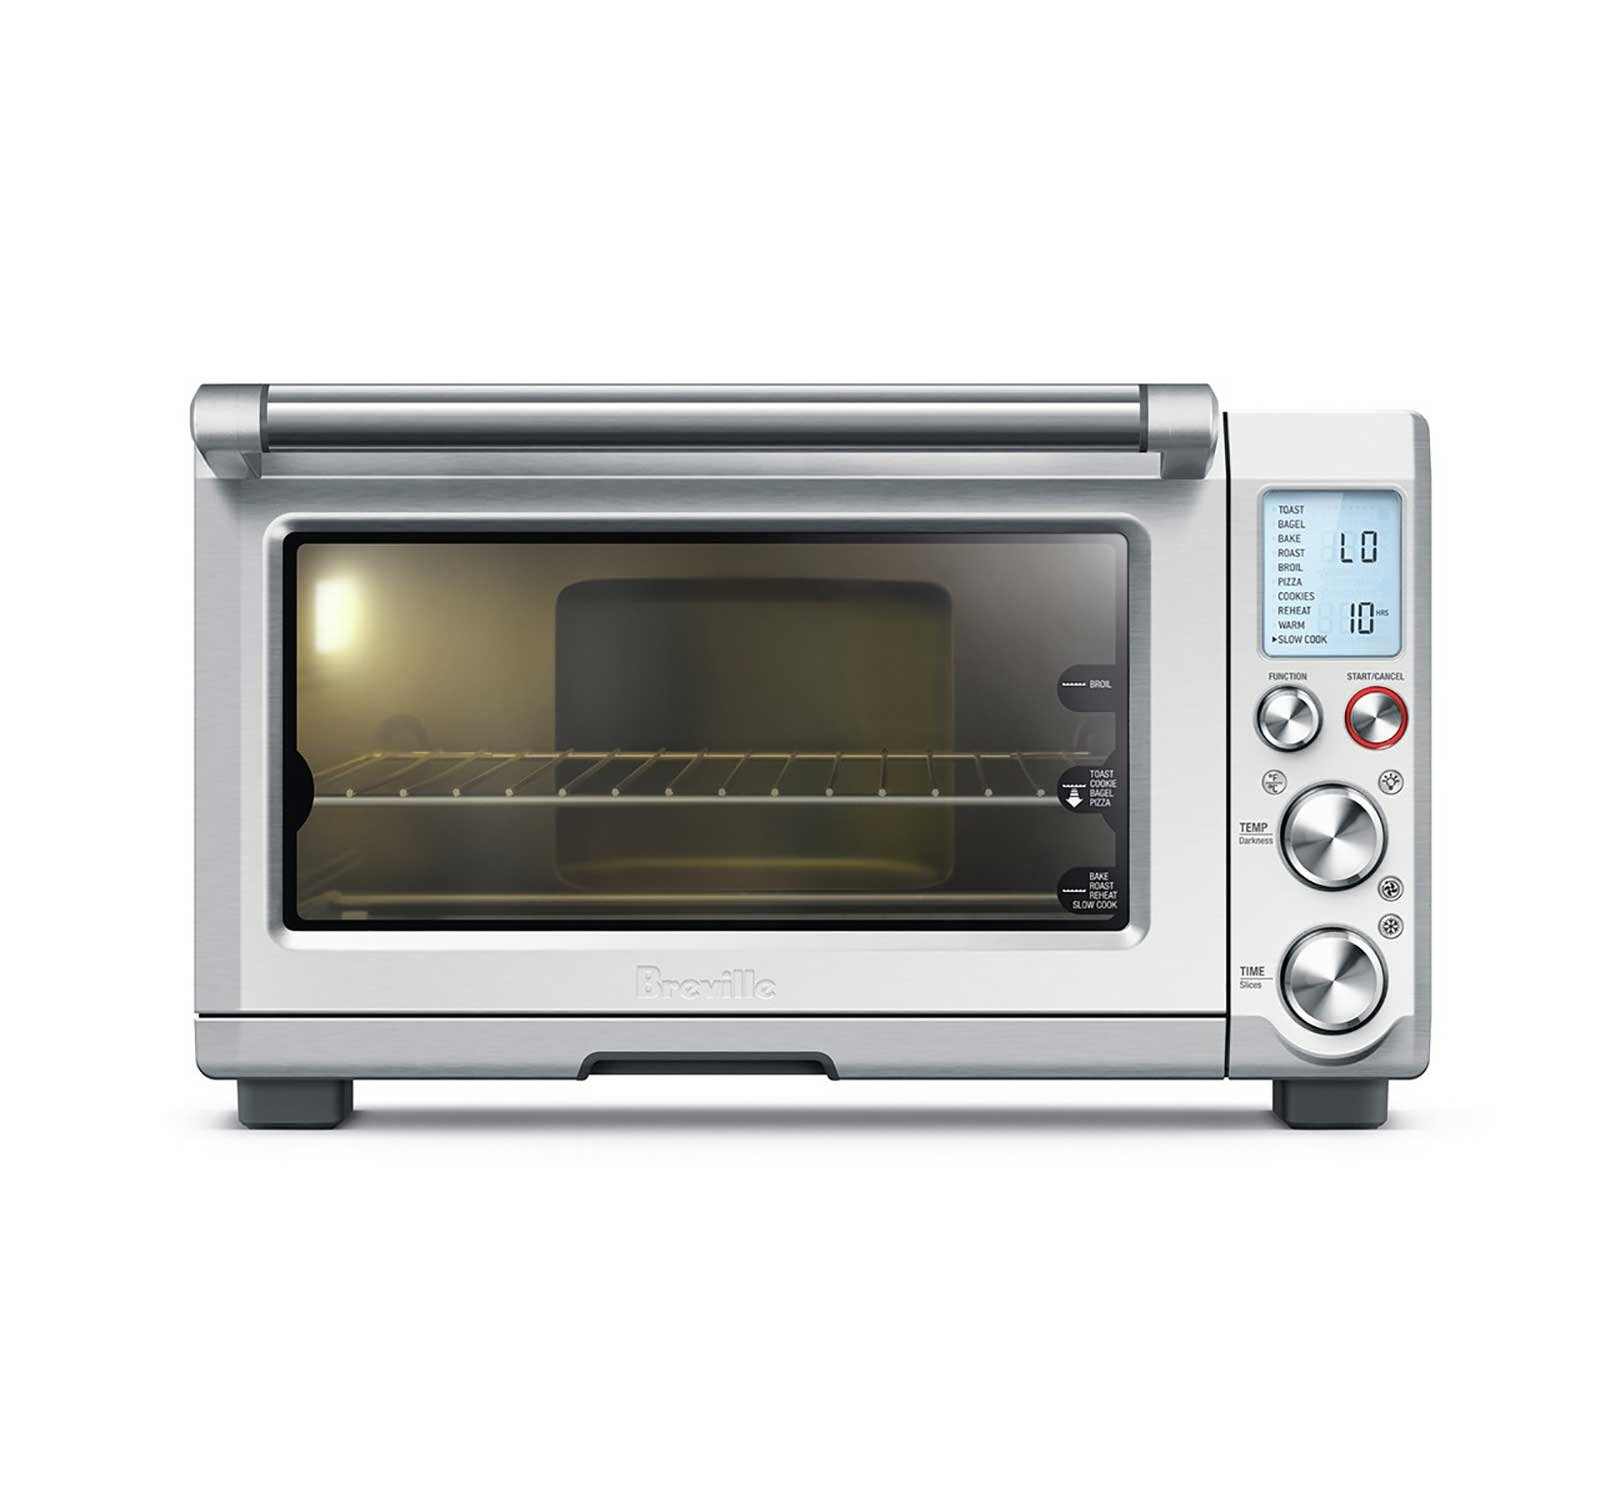 Breville BOV845BSS Convection Toaster Stainless